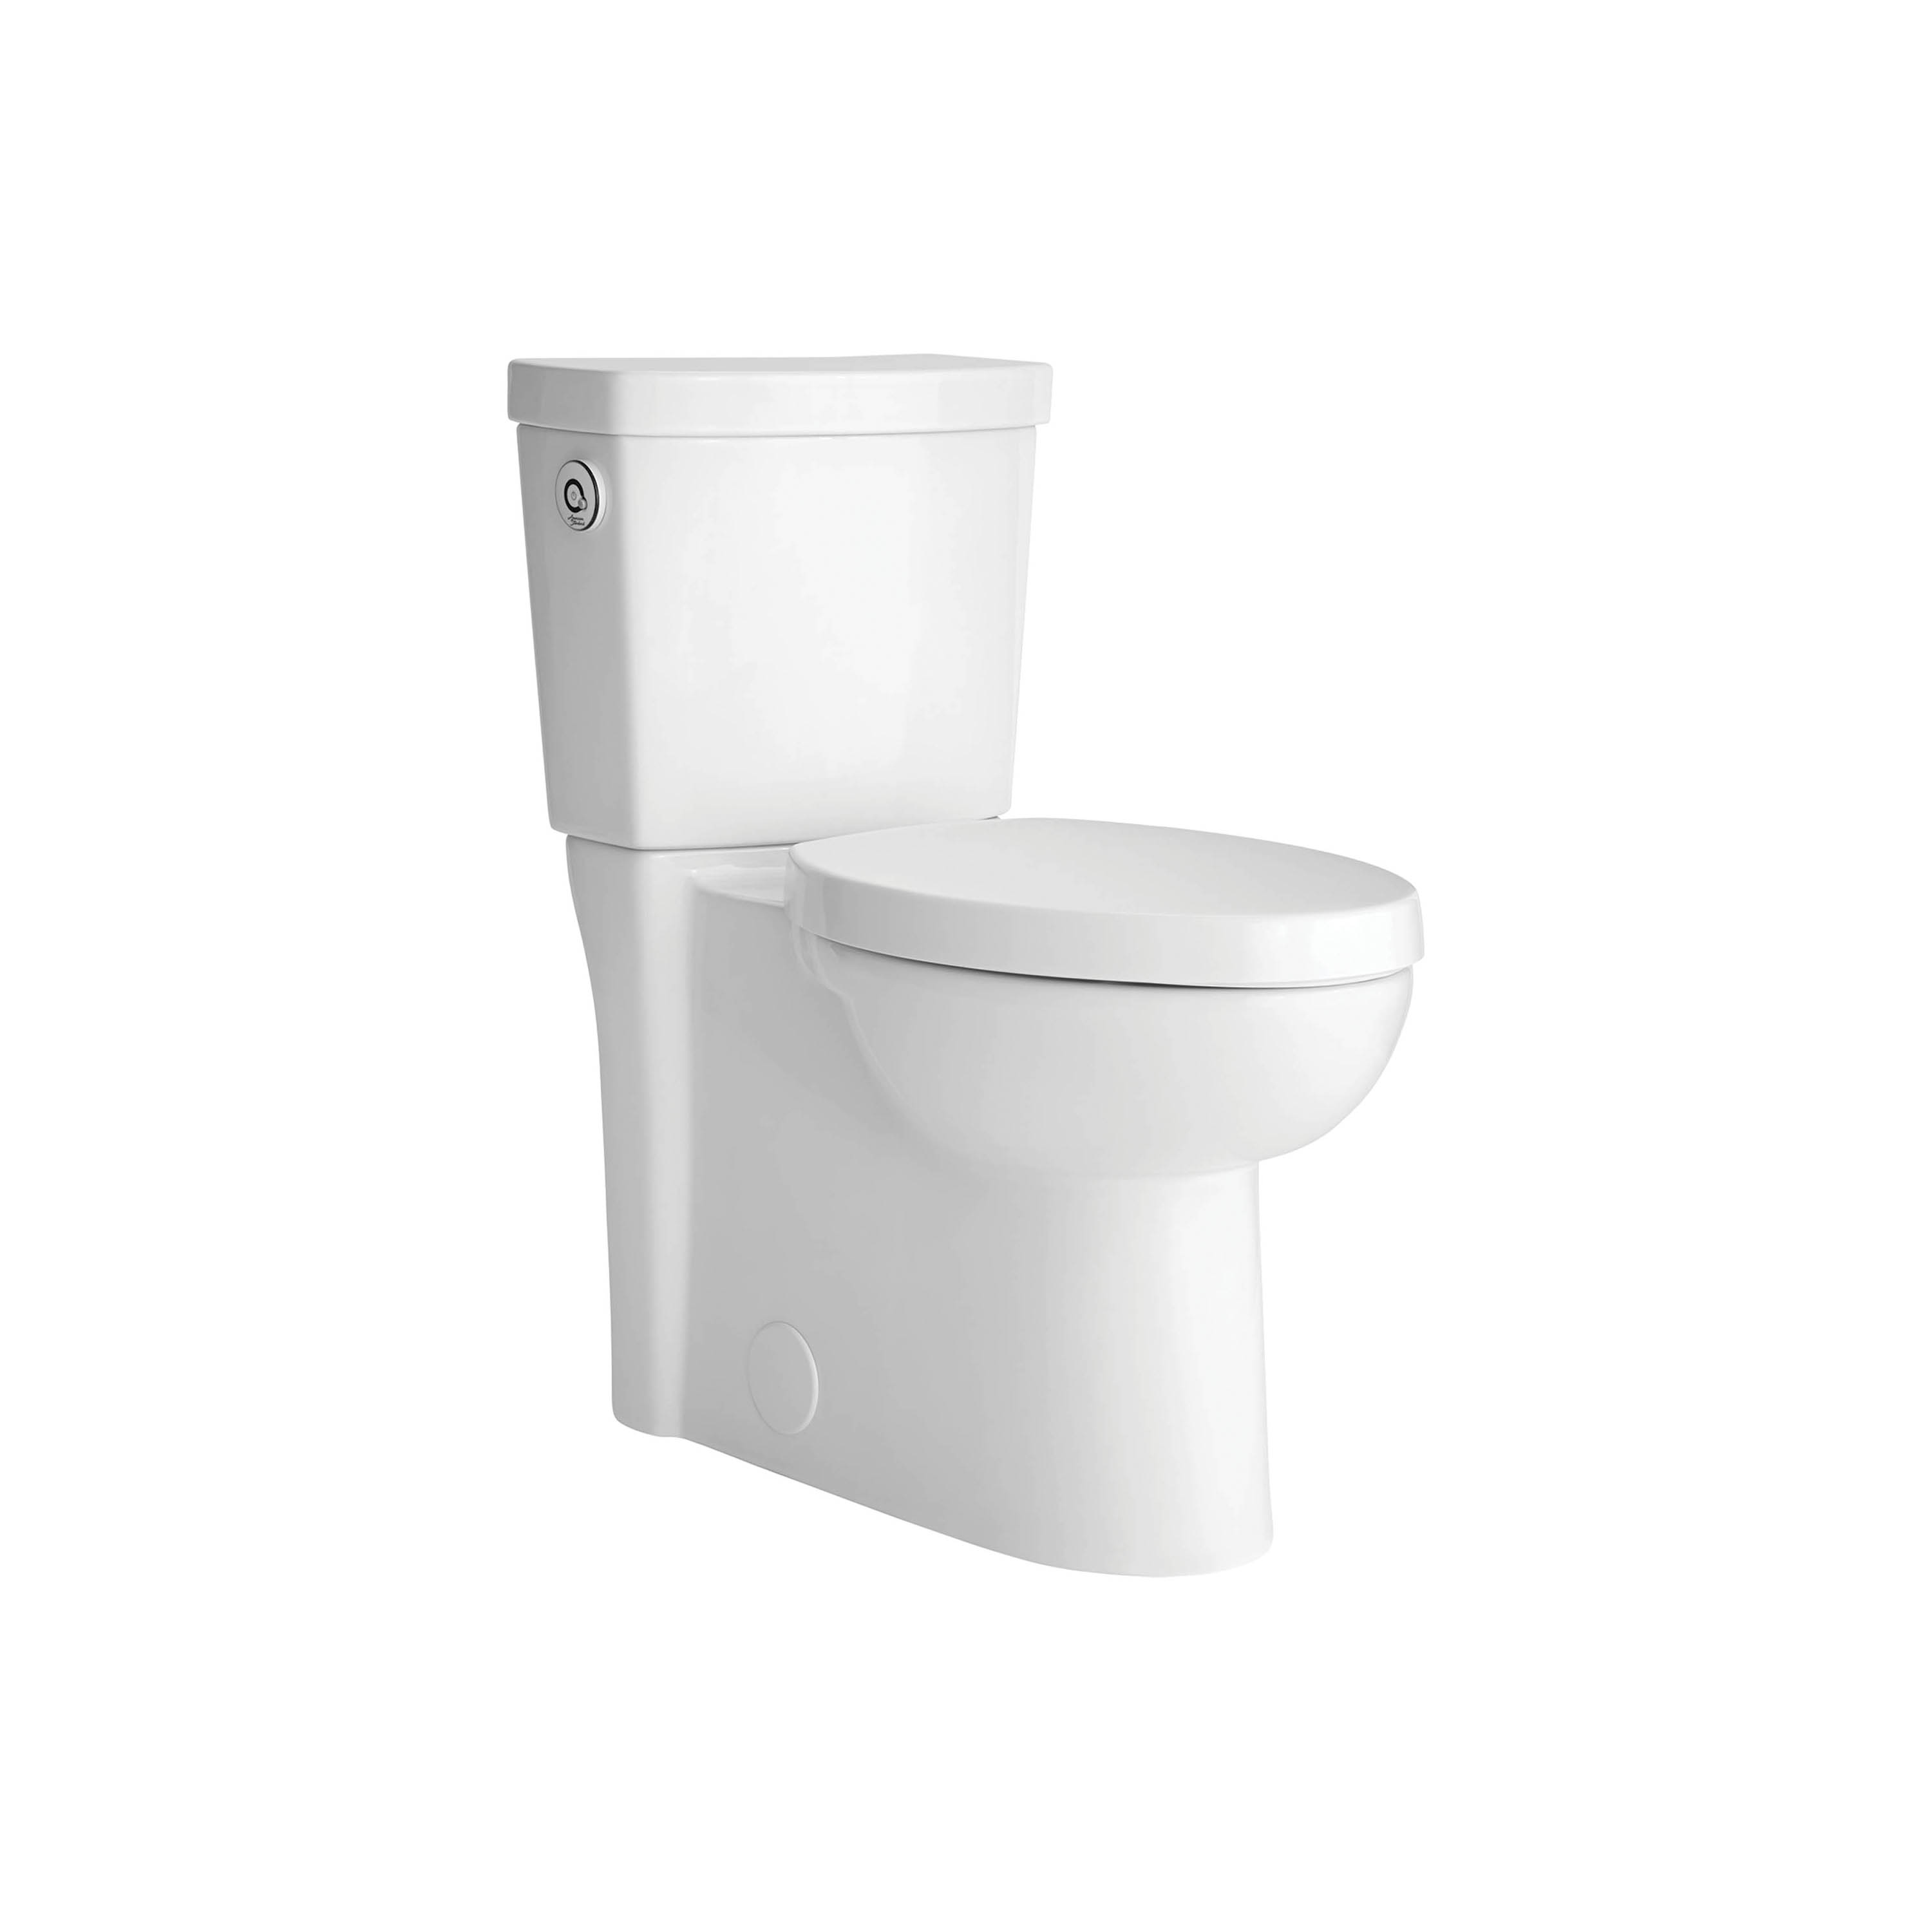 American Standard 2794119.020 Studio™ Activate™ Luxury Performance Concealed Trapway Toilet, Right Height® Elongated Bowl, 16-1/2 in H Rim, 1.28 gpf, White, Import